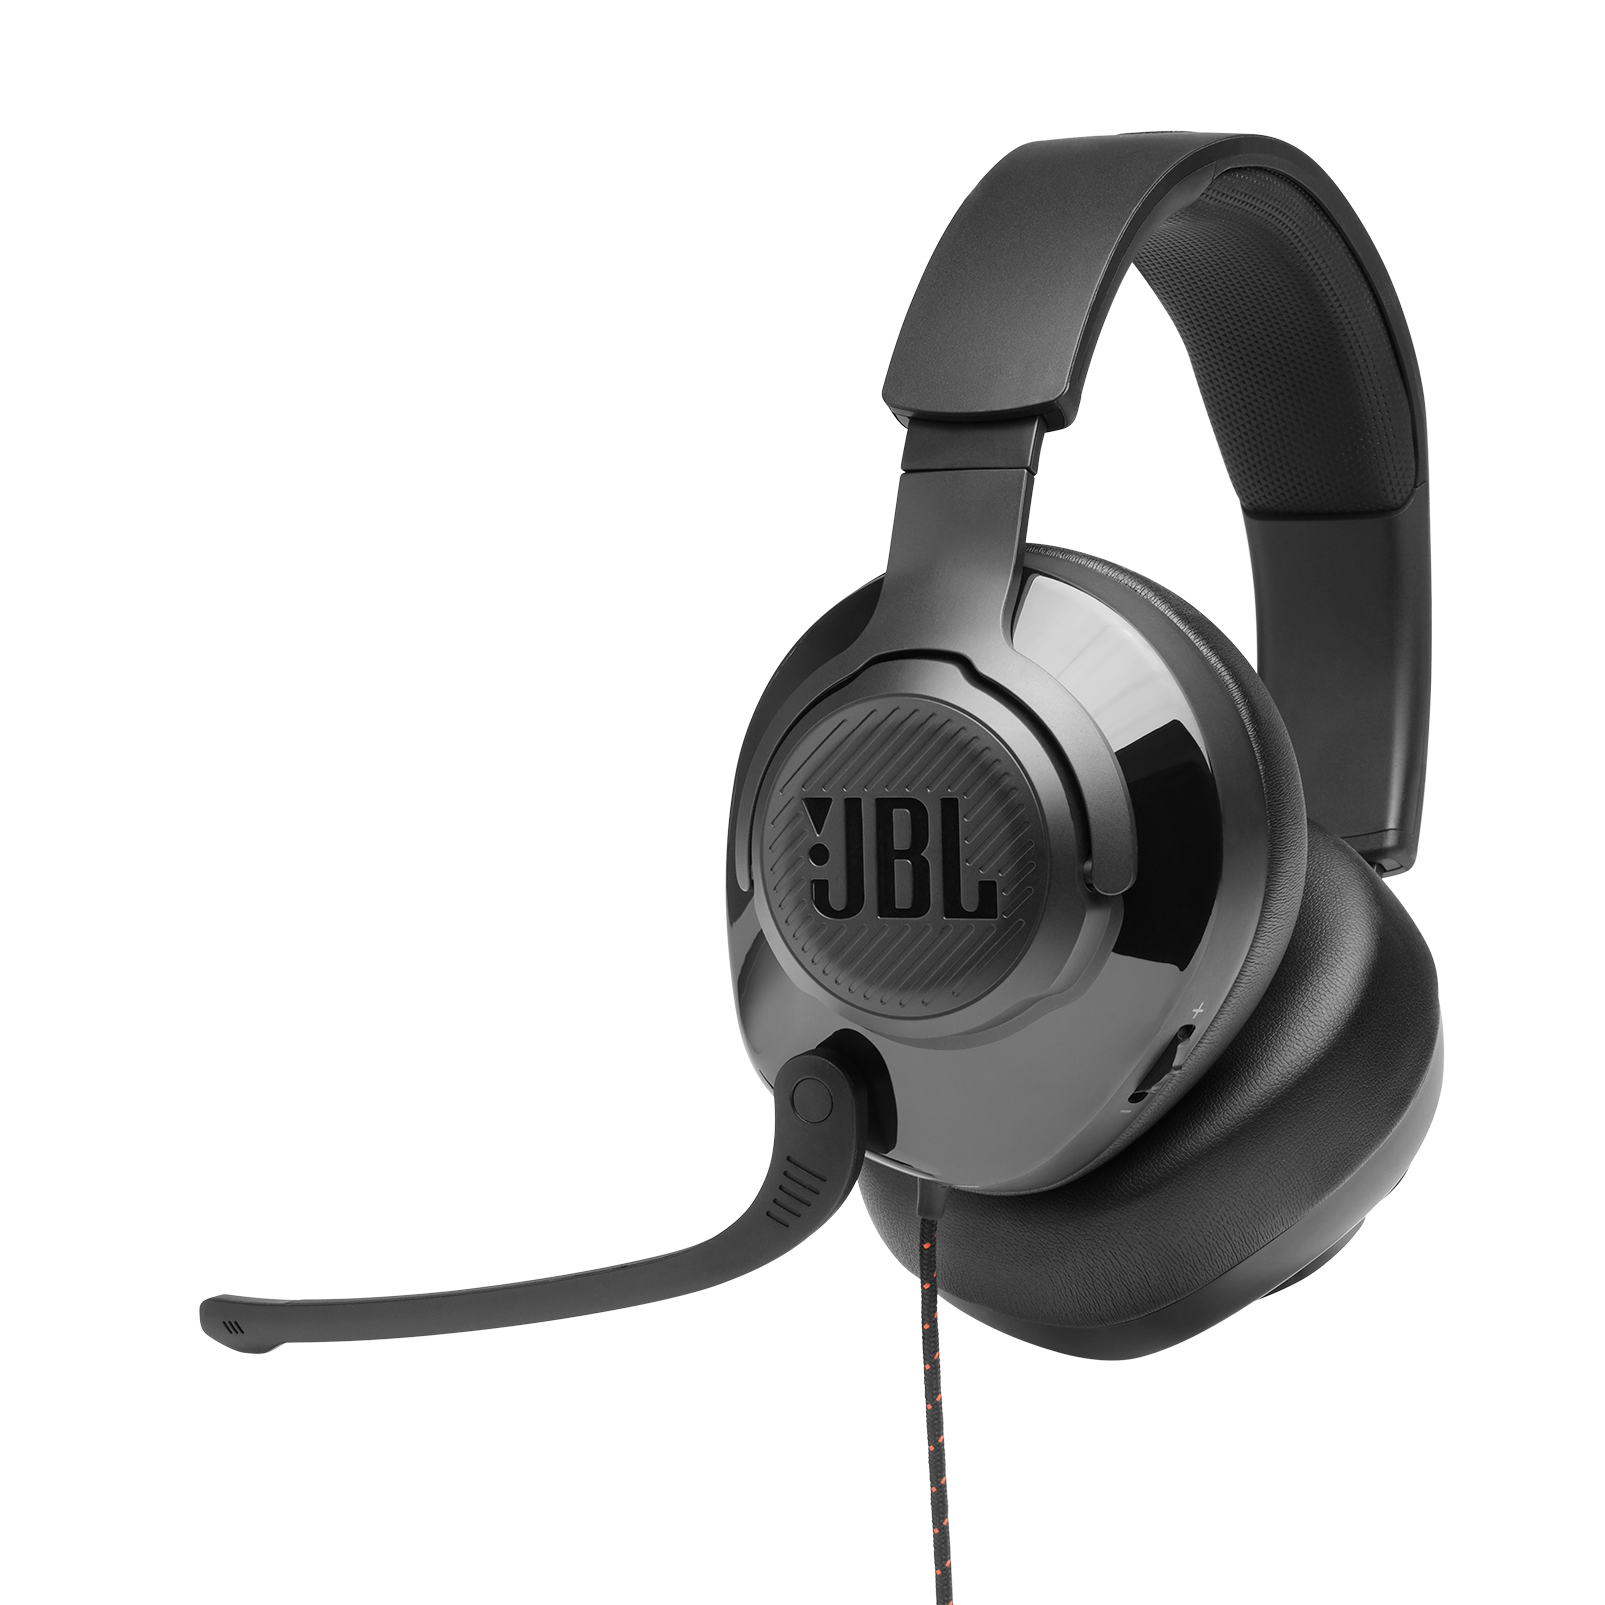 JBL Quantum 200 Gaming Headphones